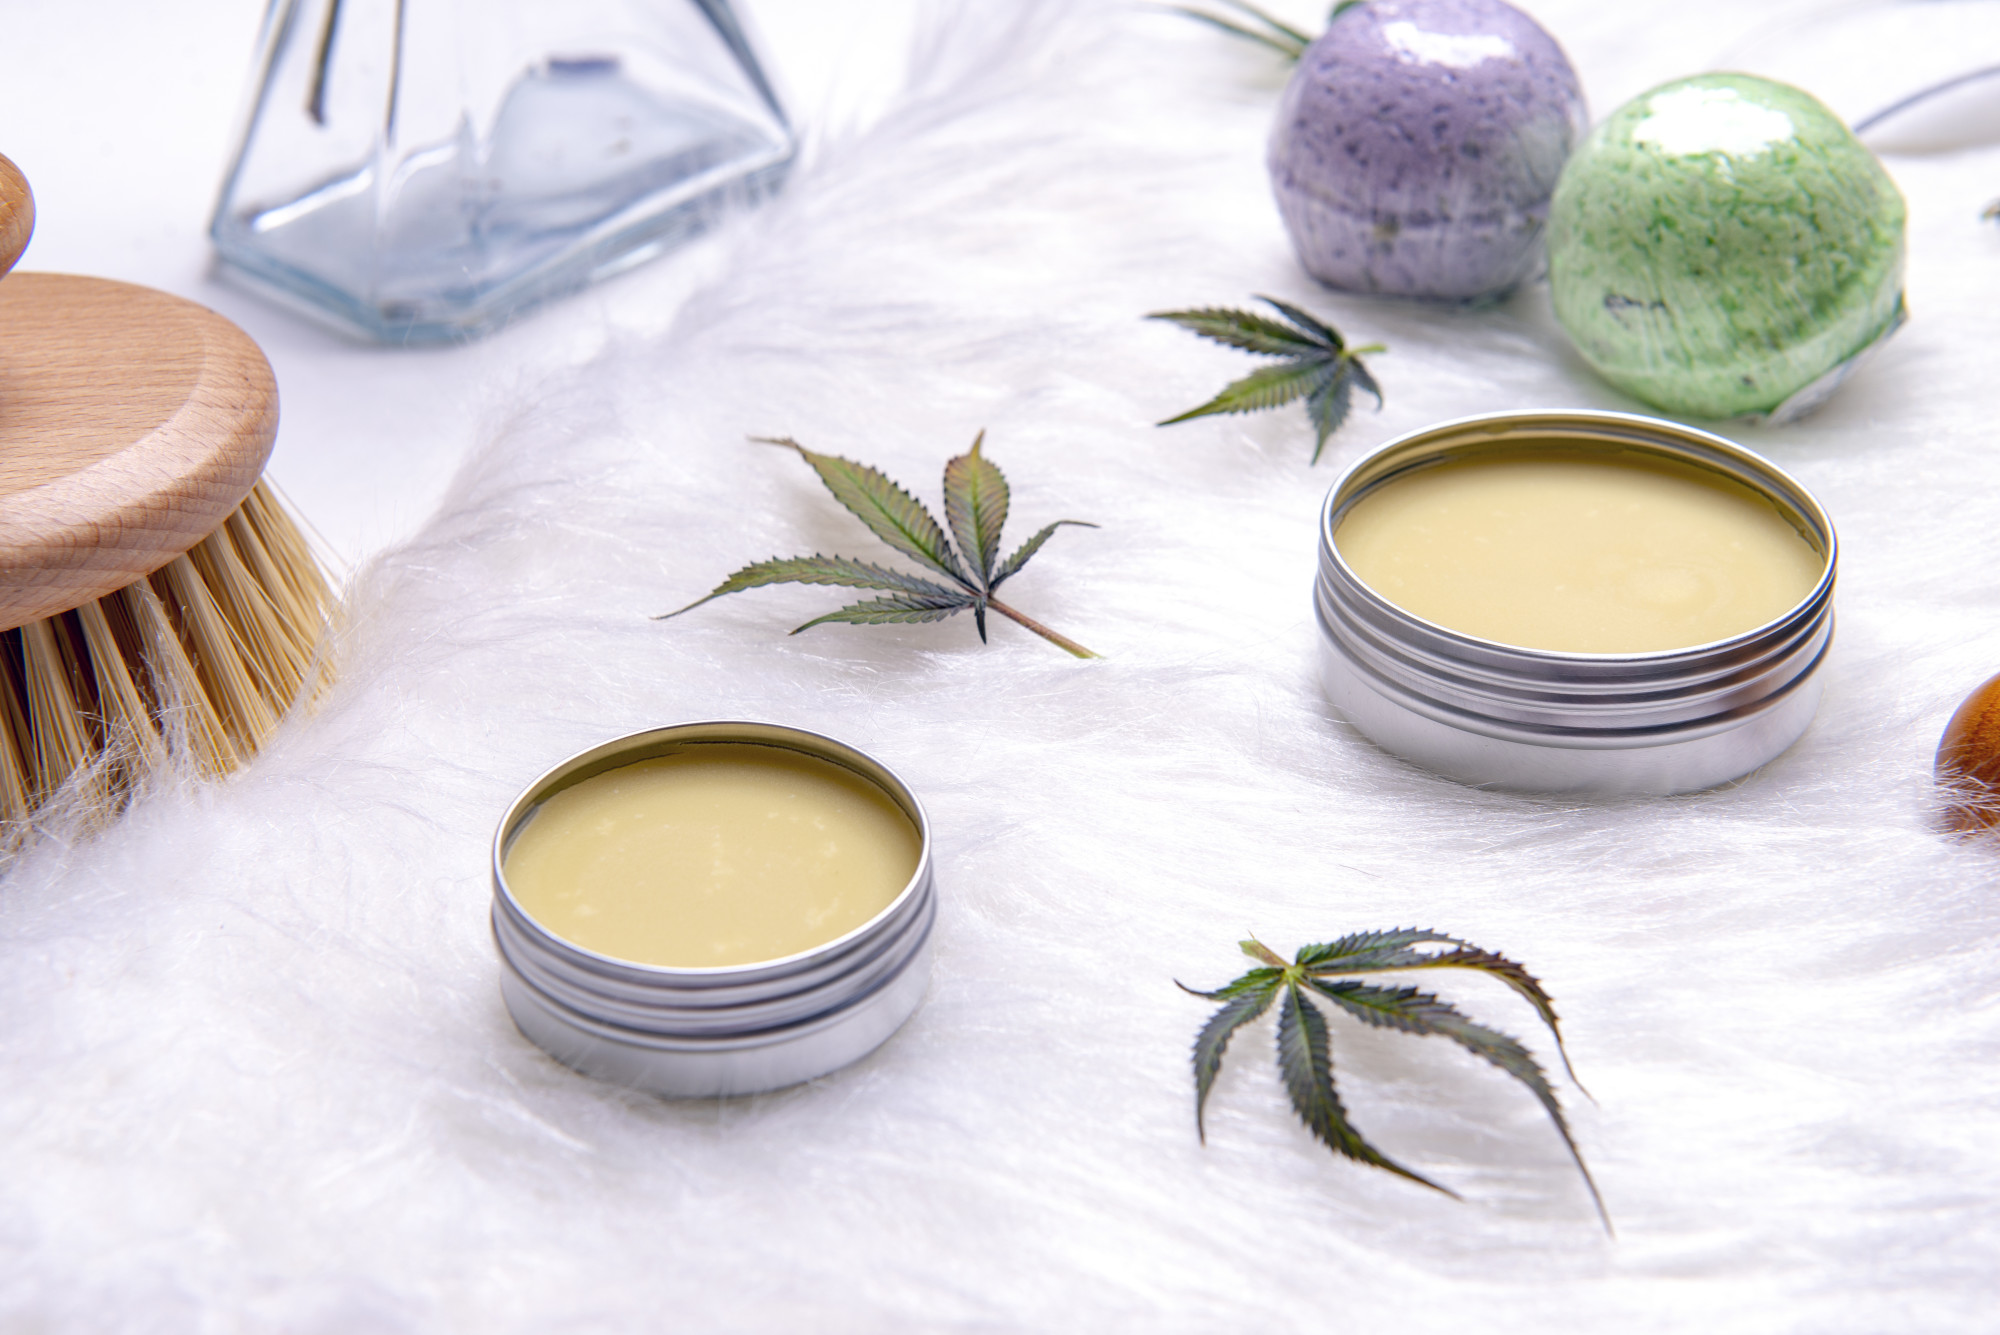 cbd skin cream containers